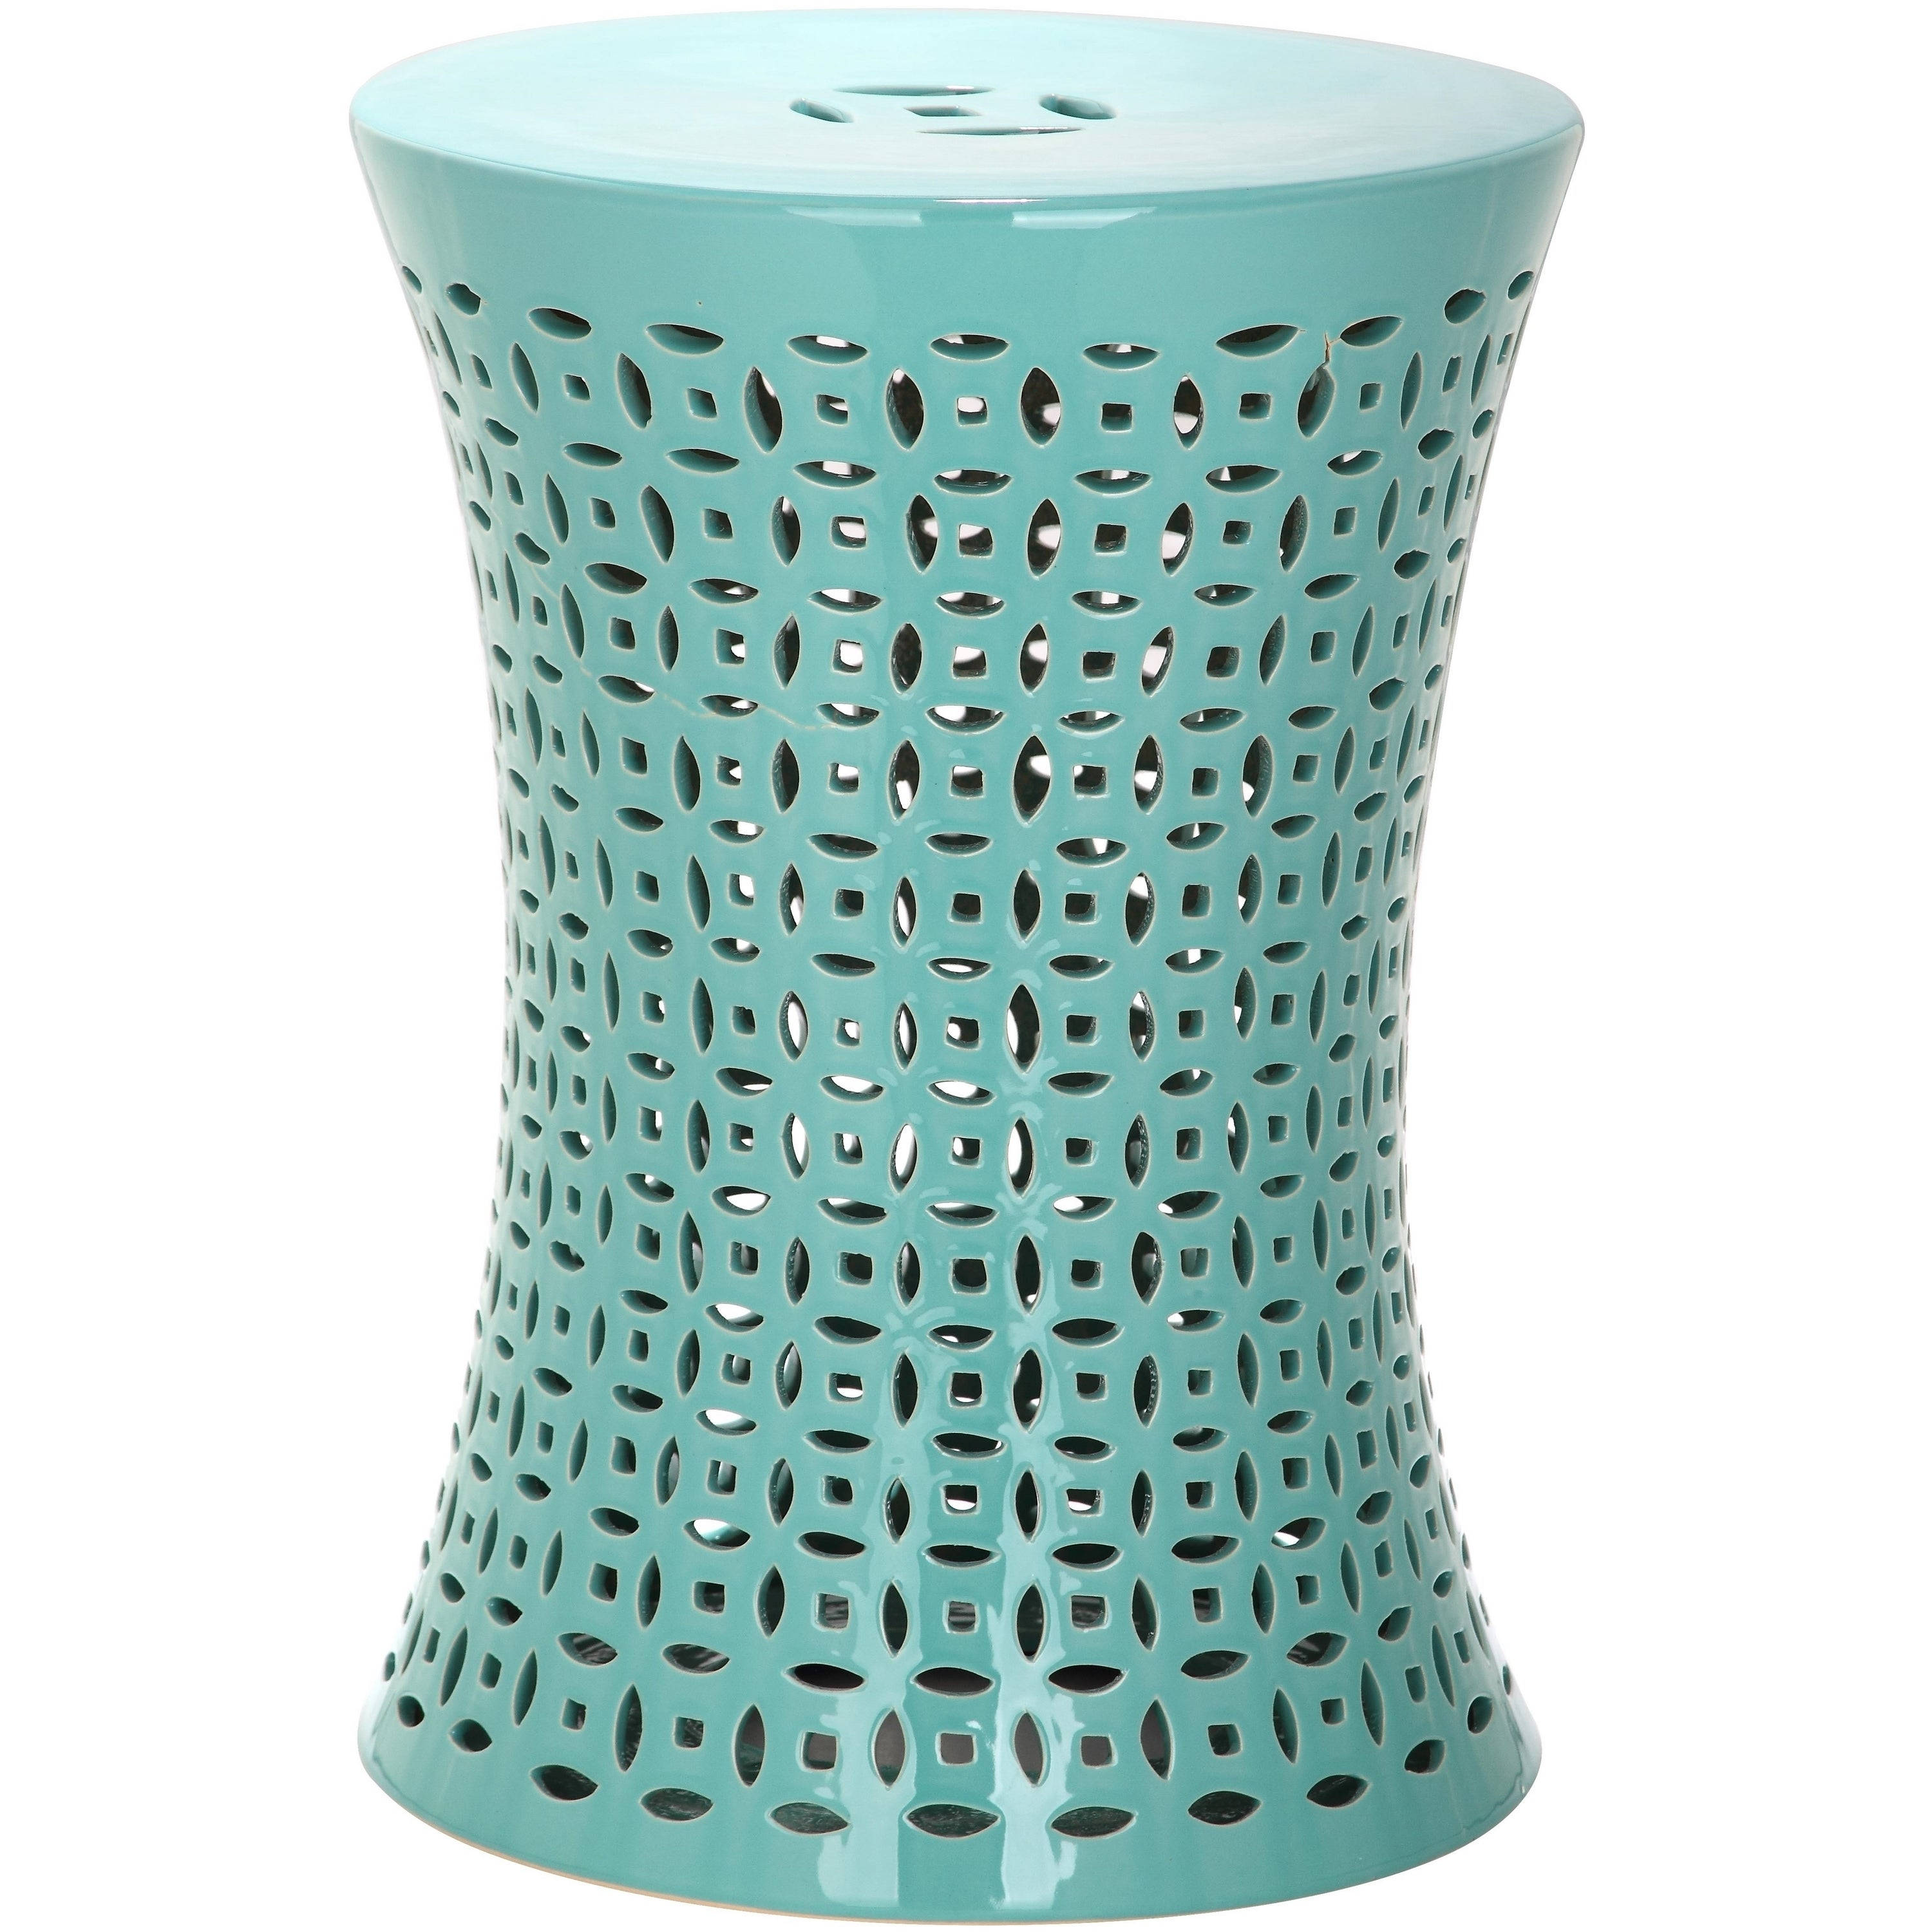 Awe Inspiring Safavieh Camilla Aqua Garden Stool 12 5 X 12 5 X 17 5 Andrewgaddart Wooden Chair Designs For Living Room Andrewgaddartcom